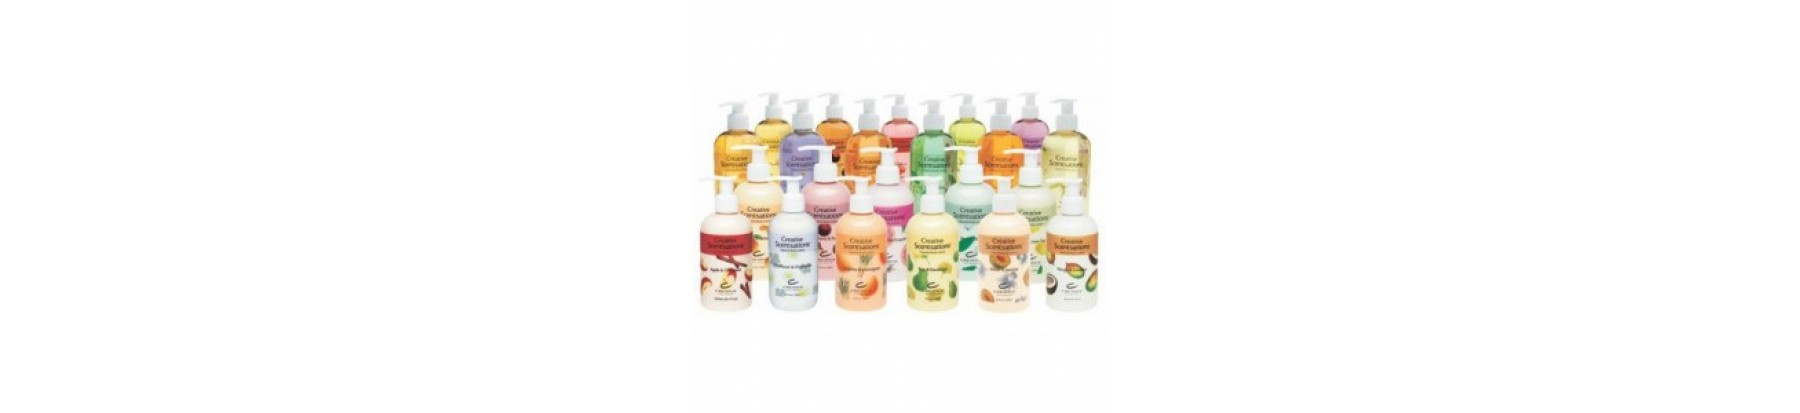 Лосьоны CND Scentsations